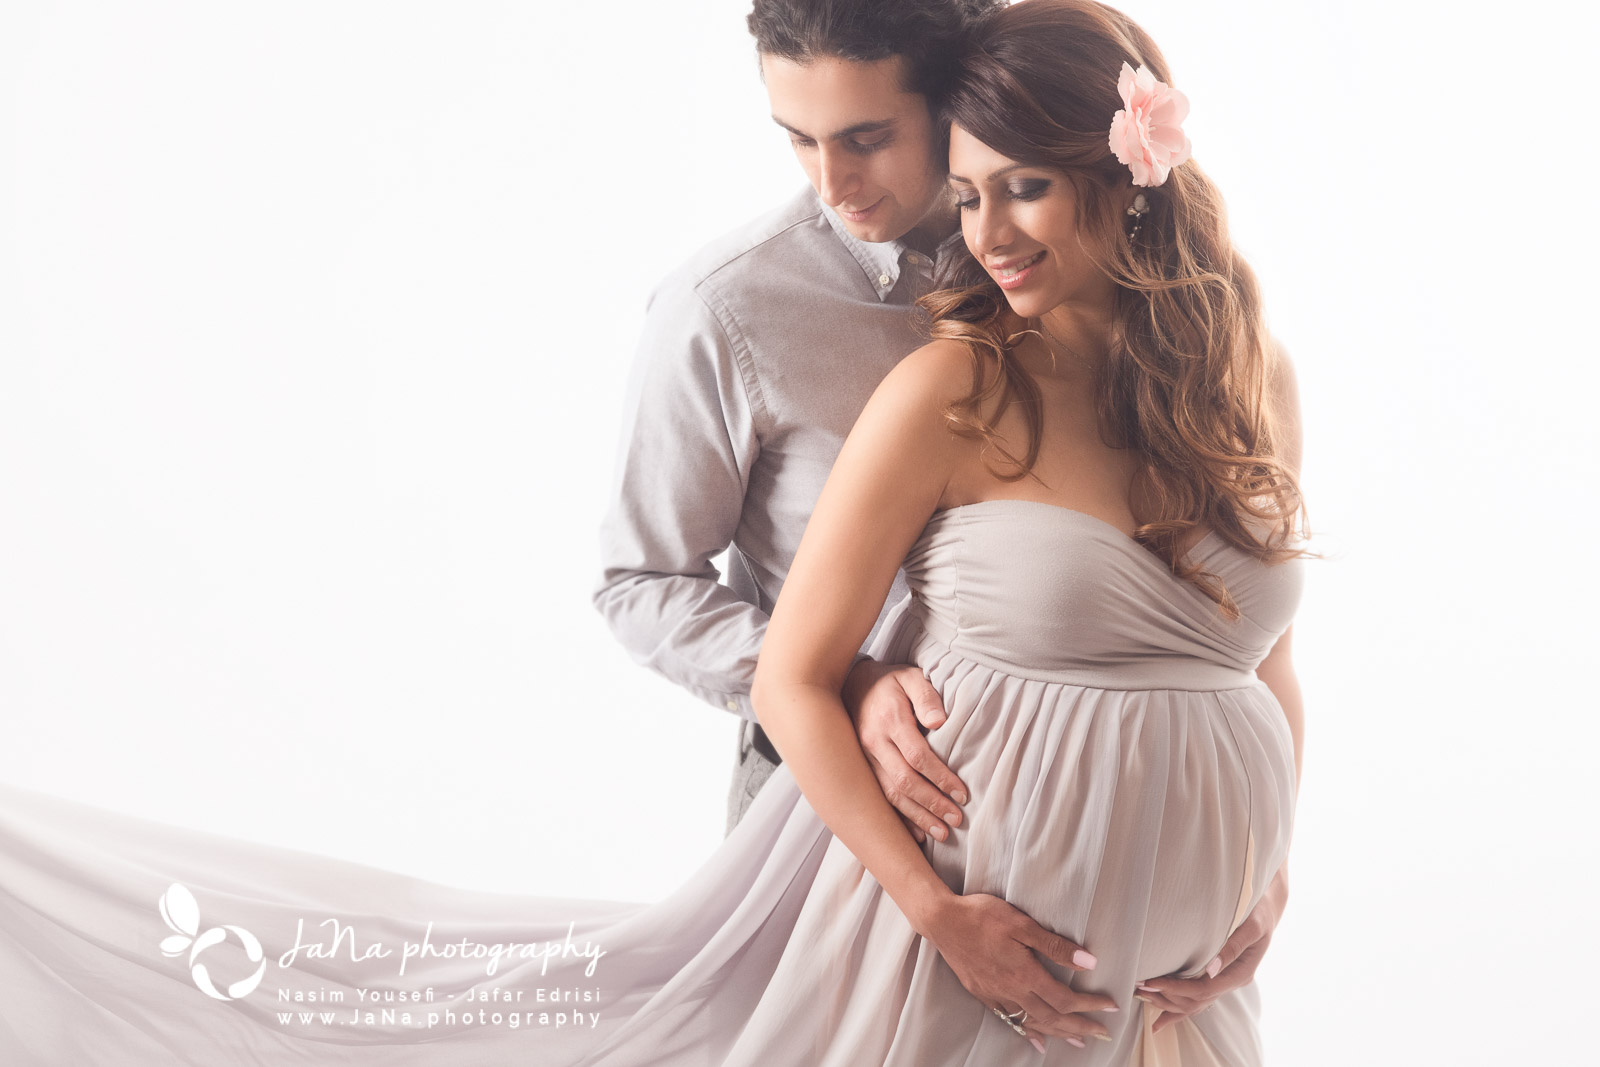 Maternity Newborn photography - Vancouver, Burnaby